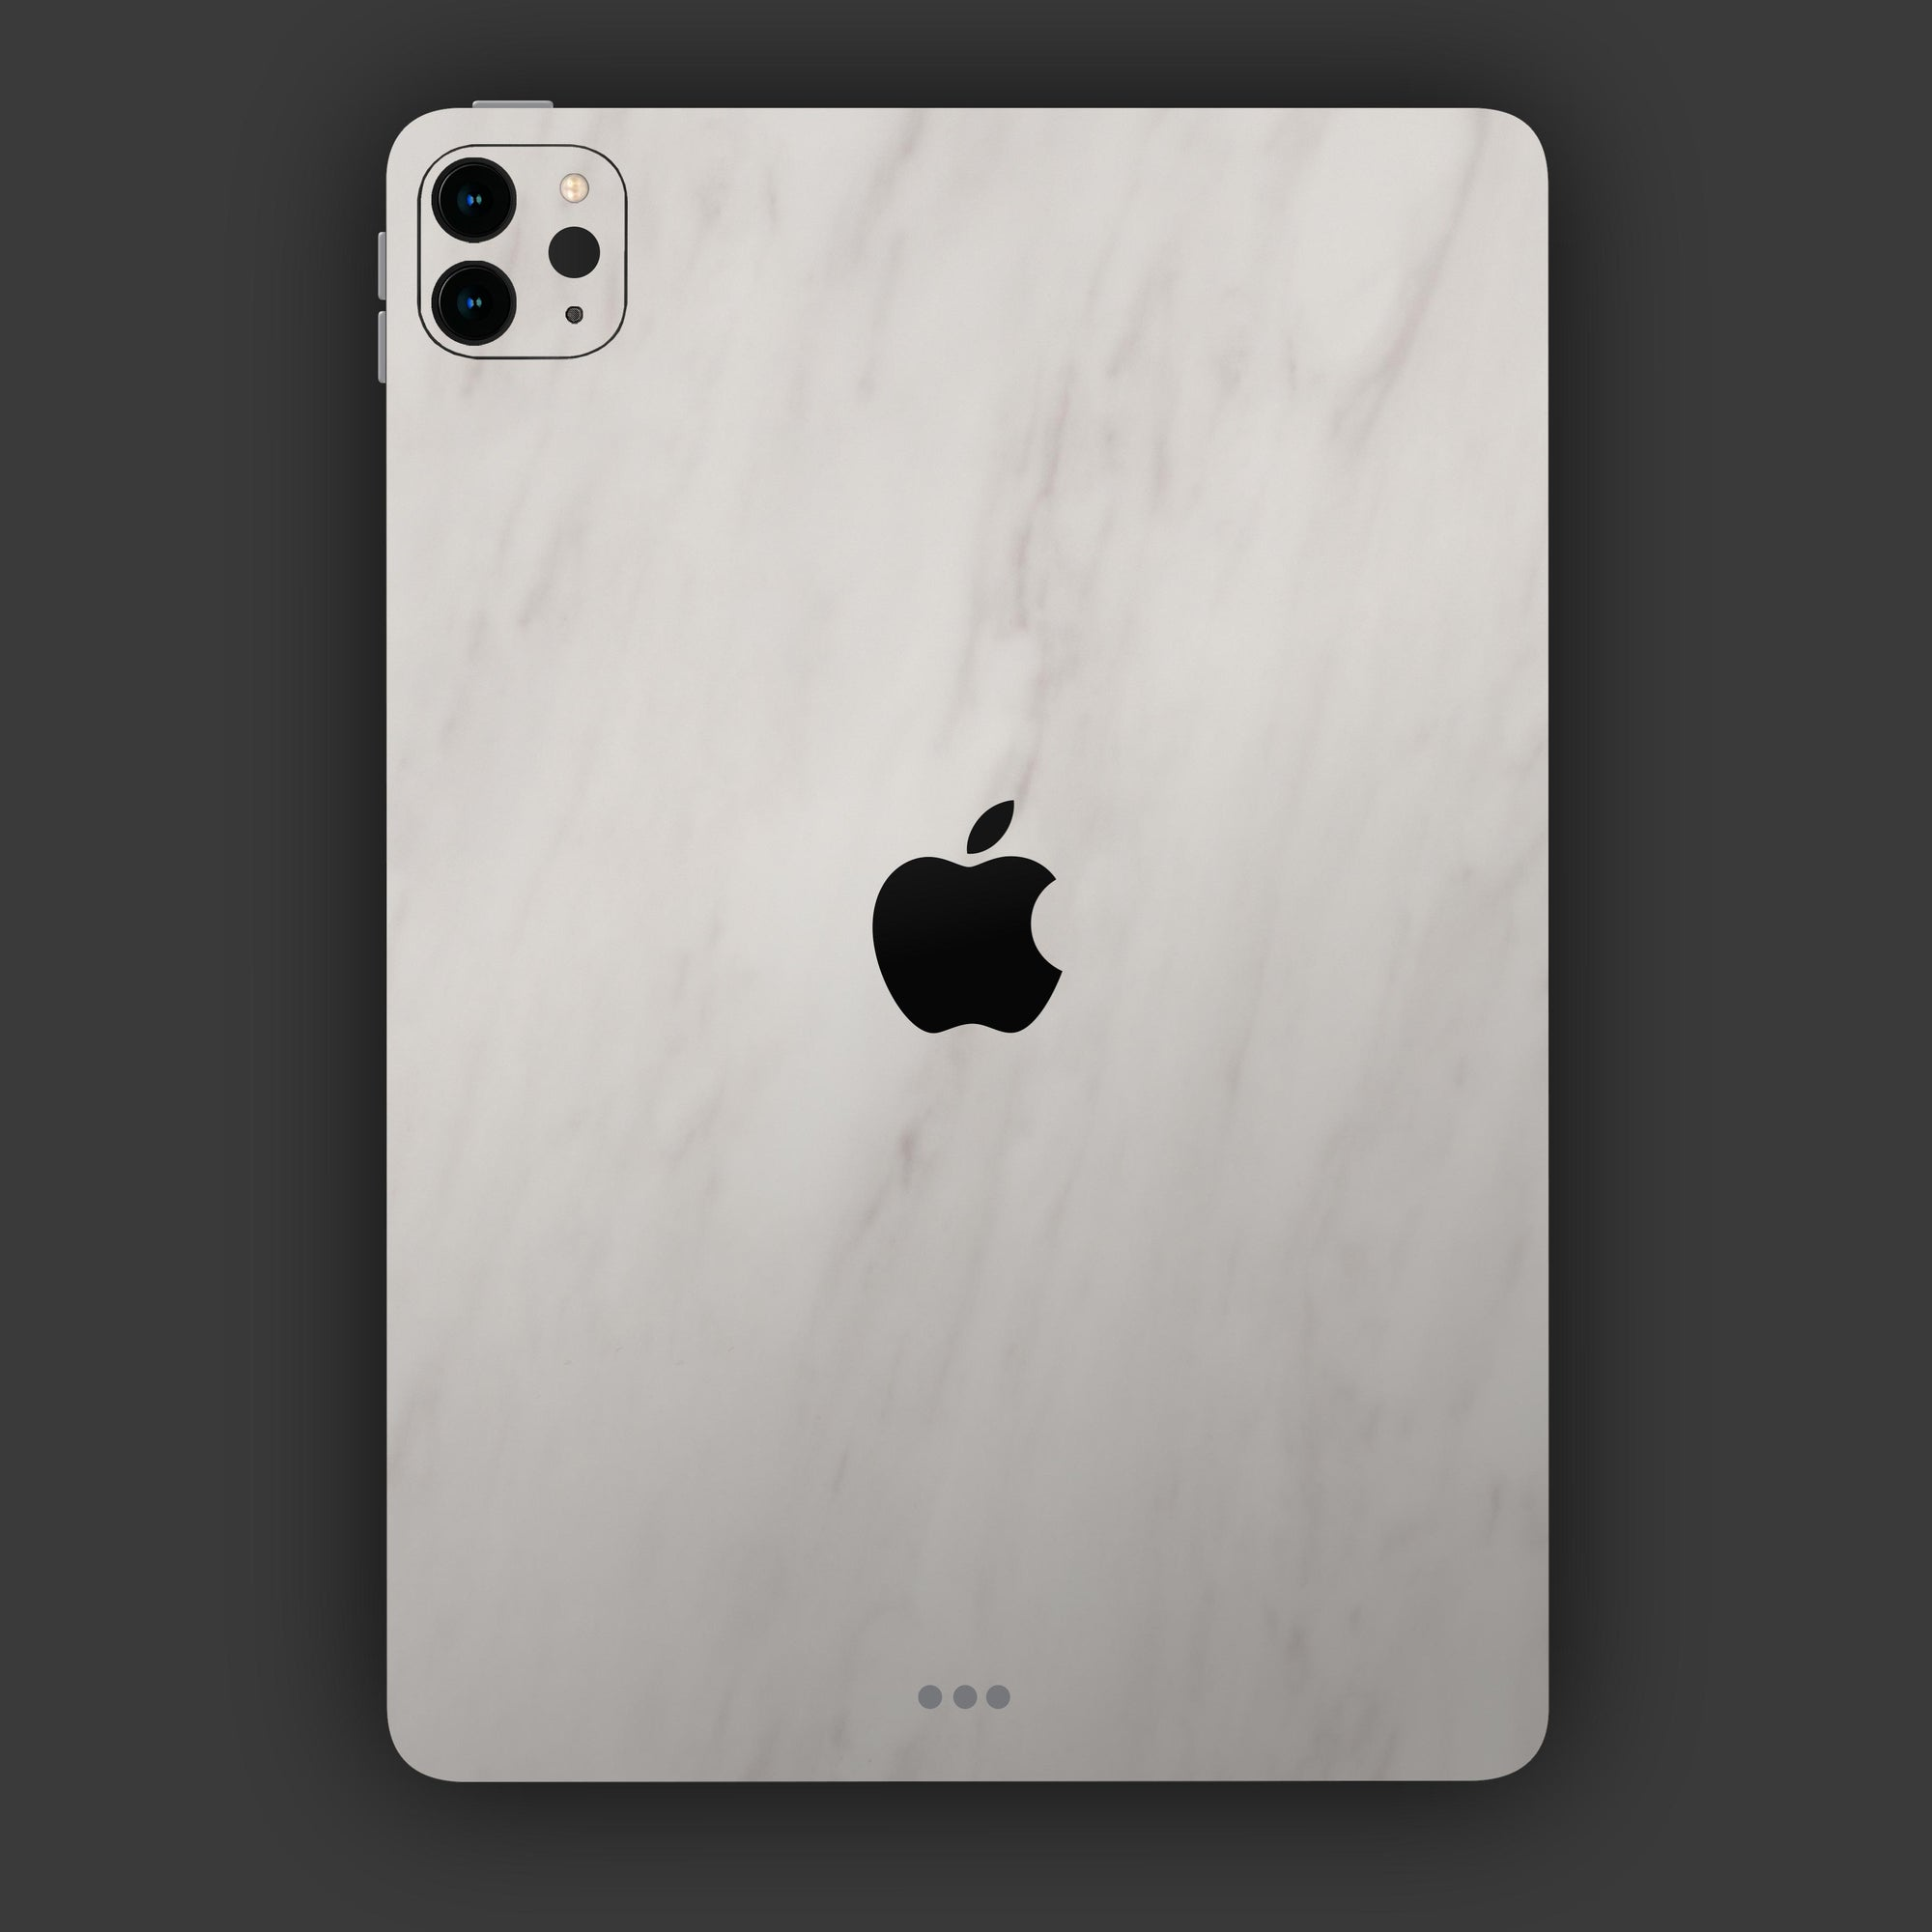 iPad-Pro-11-2020-skin-mit-Apple-Logo-in-Marmor